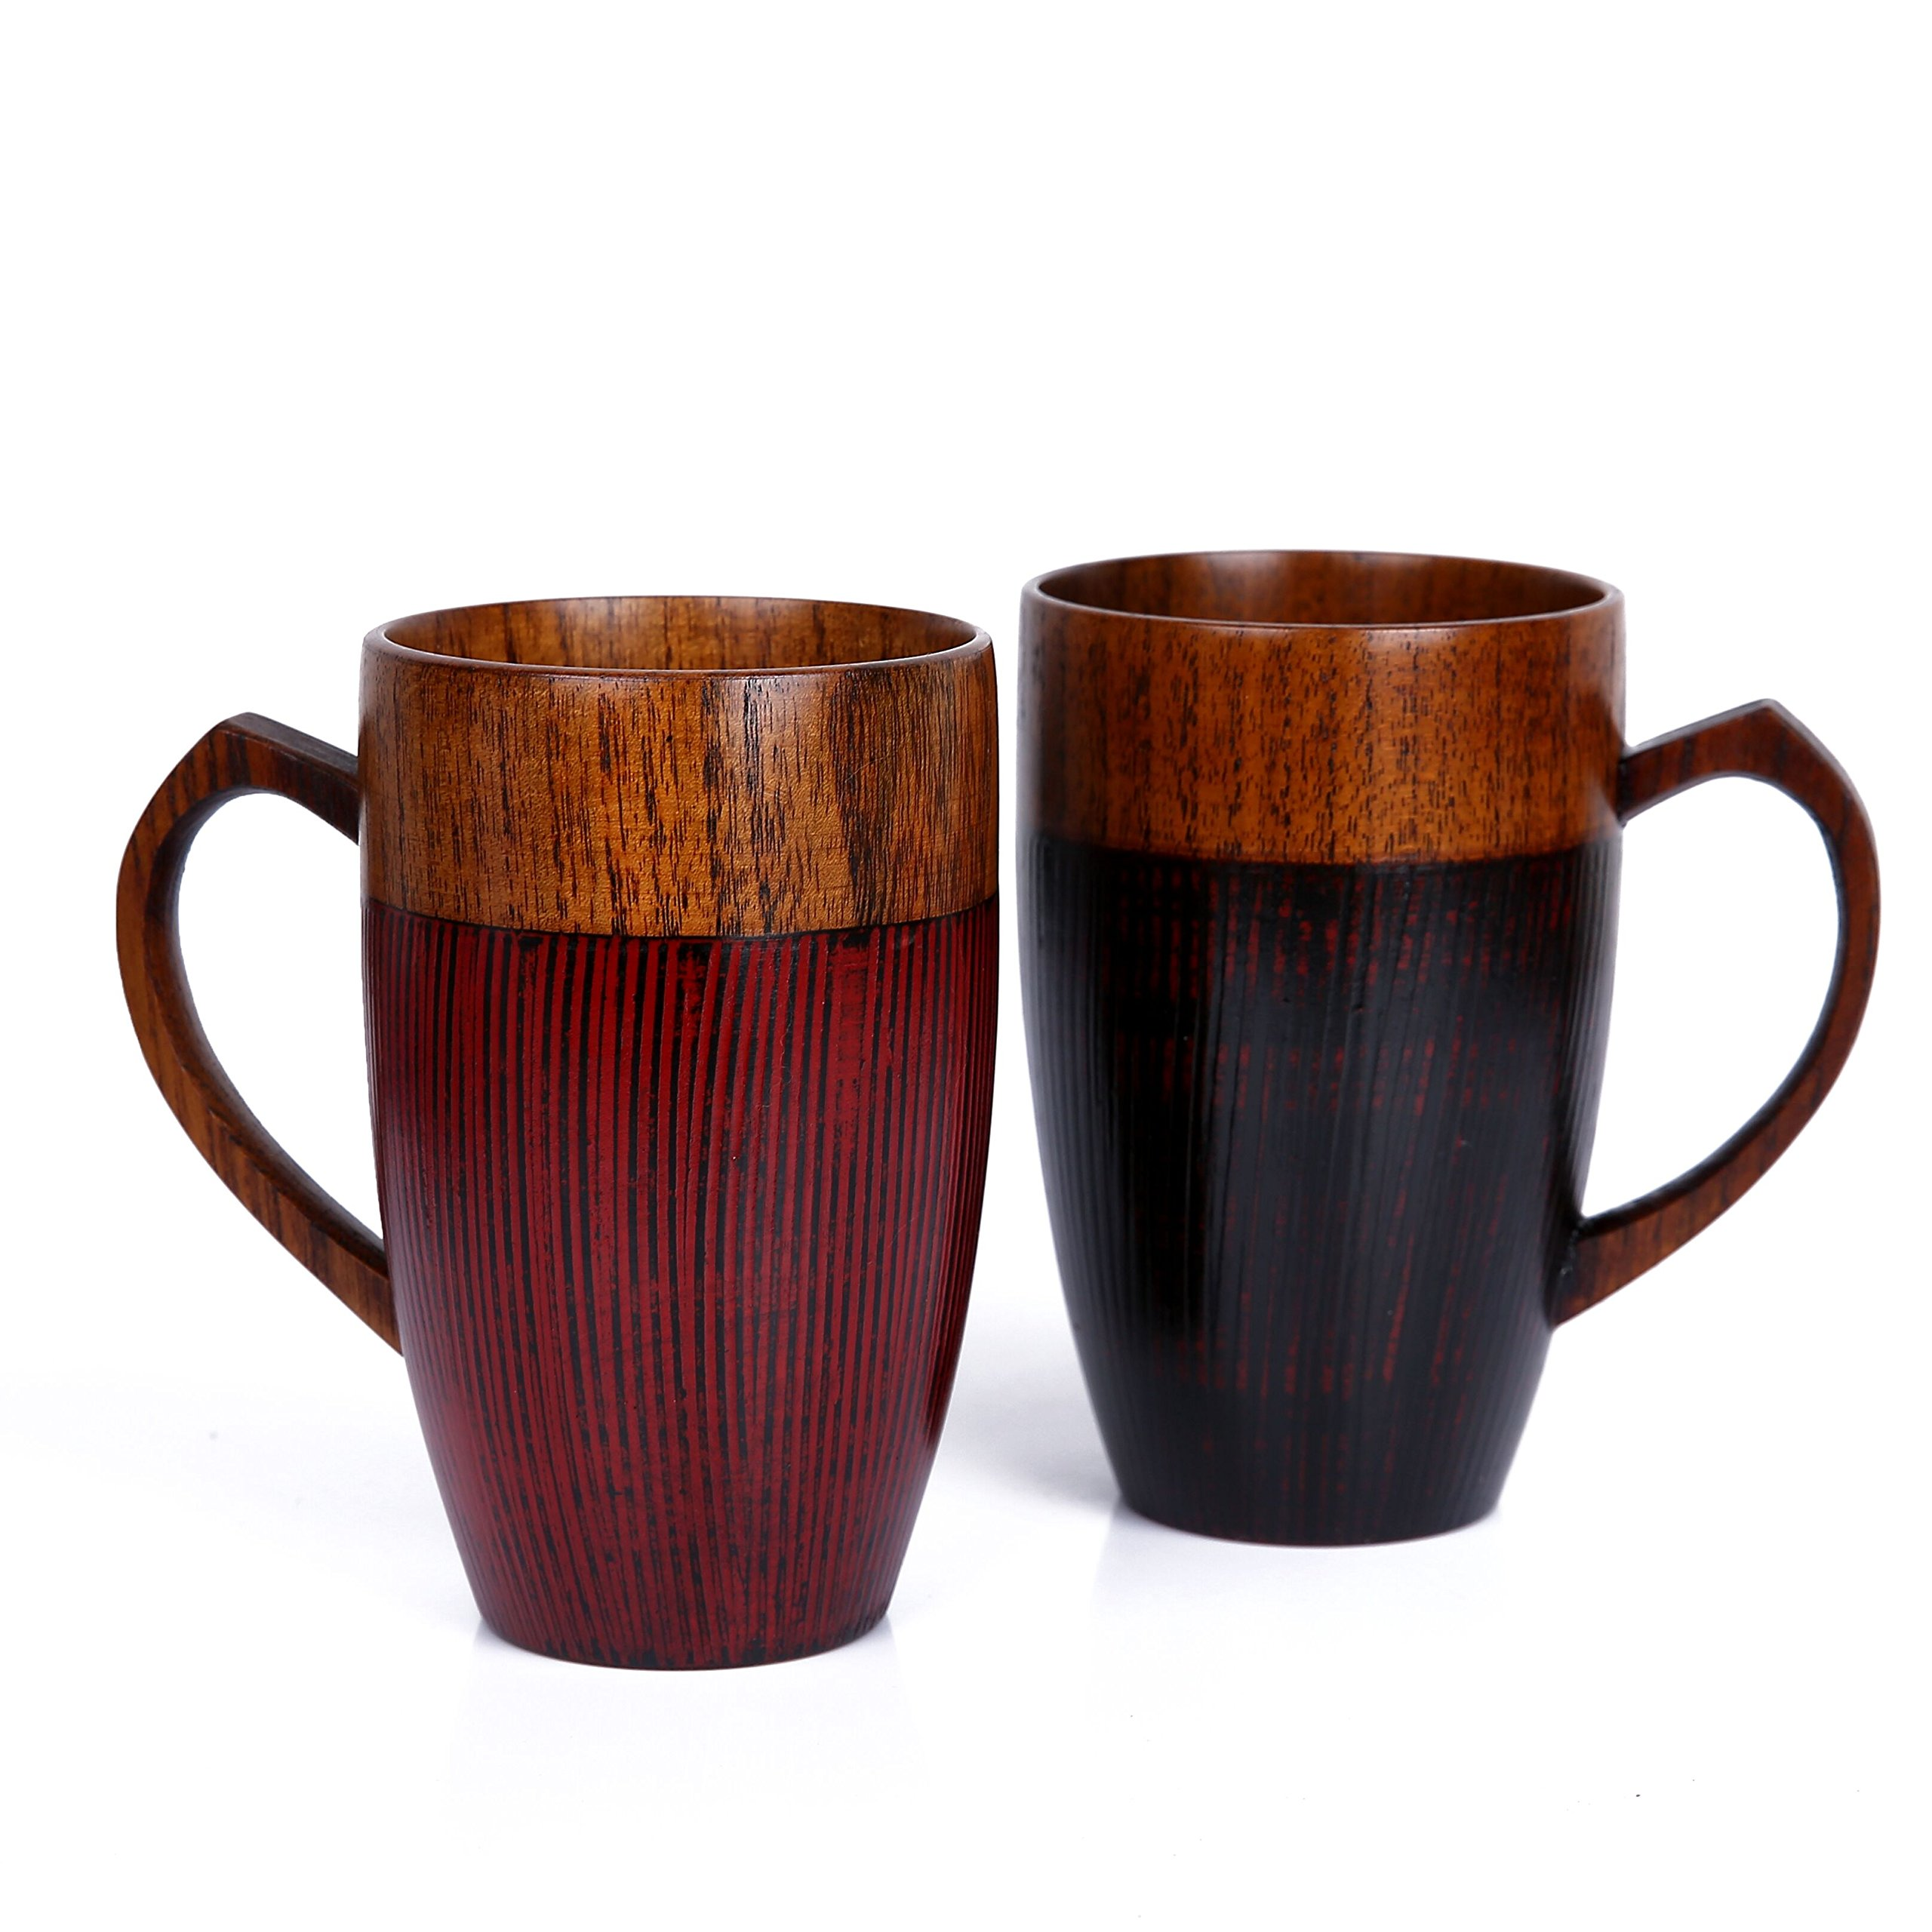 WOOD MEETS COLOR Mug Cup Handmade Wood with Heart Handle(Black 10 OZ) by WOOD MEETS COLOR (Image #2)